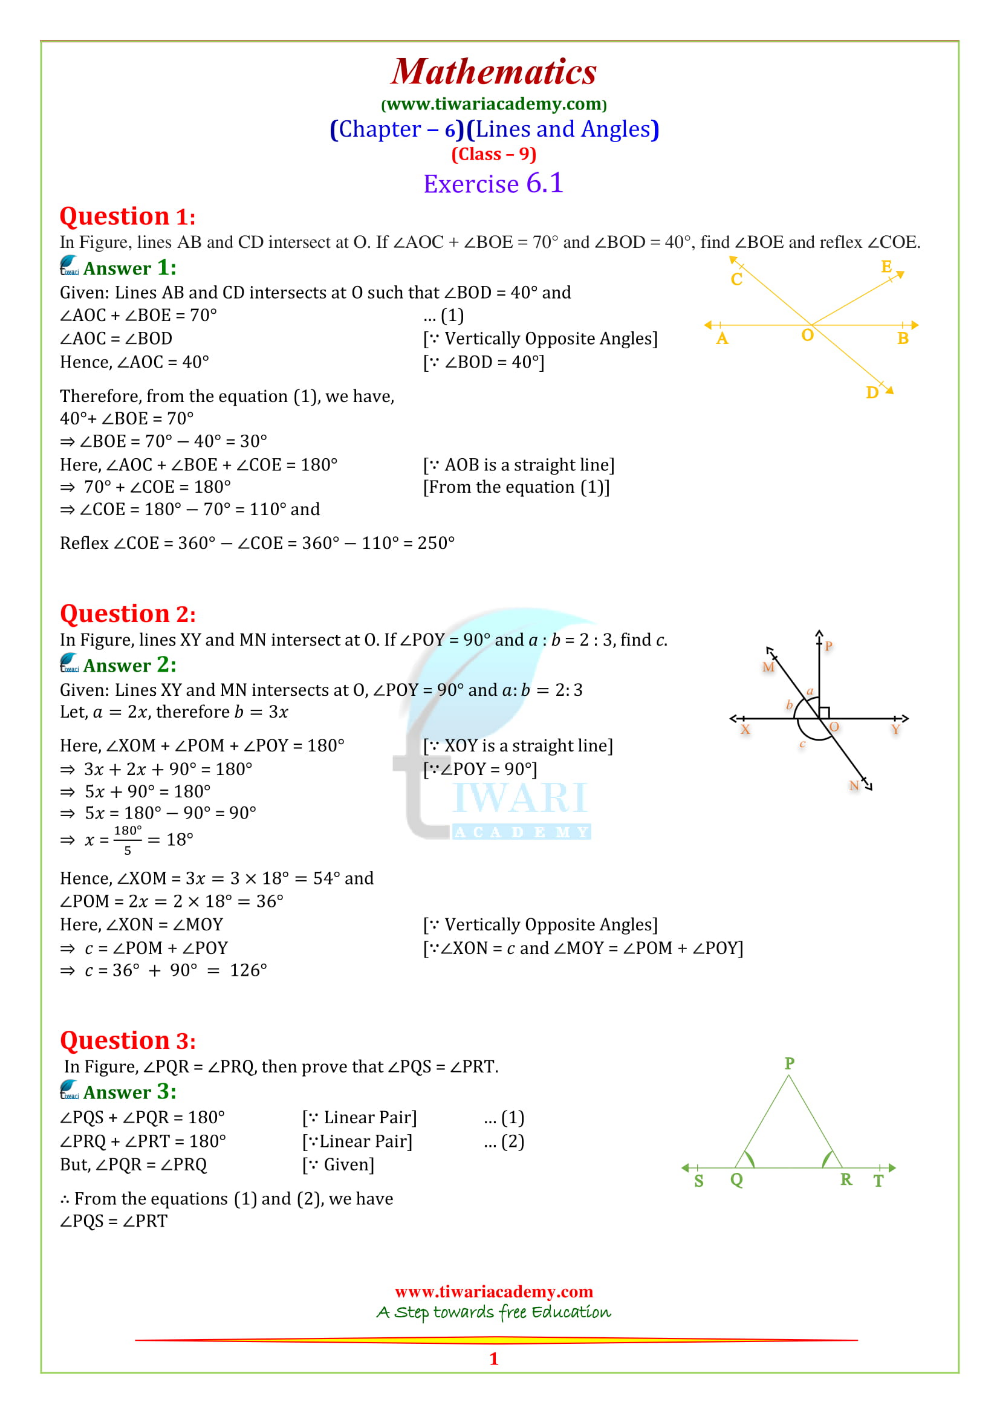 Ncert Solutions For Class 9 Maths Chapter 6 Lines And Angles 2019 20 Math Chapter Solutions [ 1414 x 1000 Pixel ]